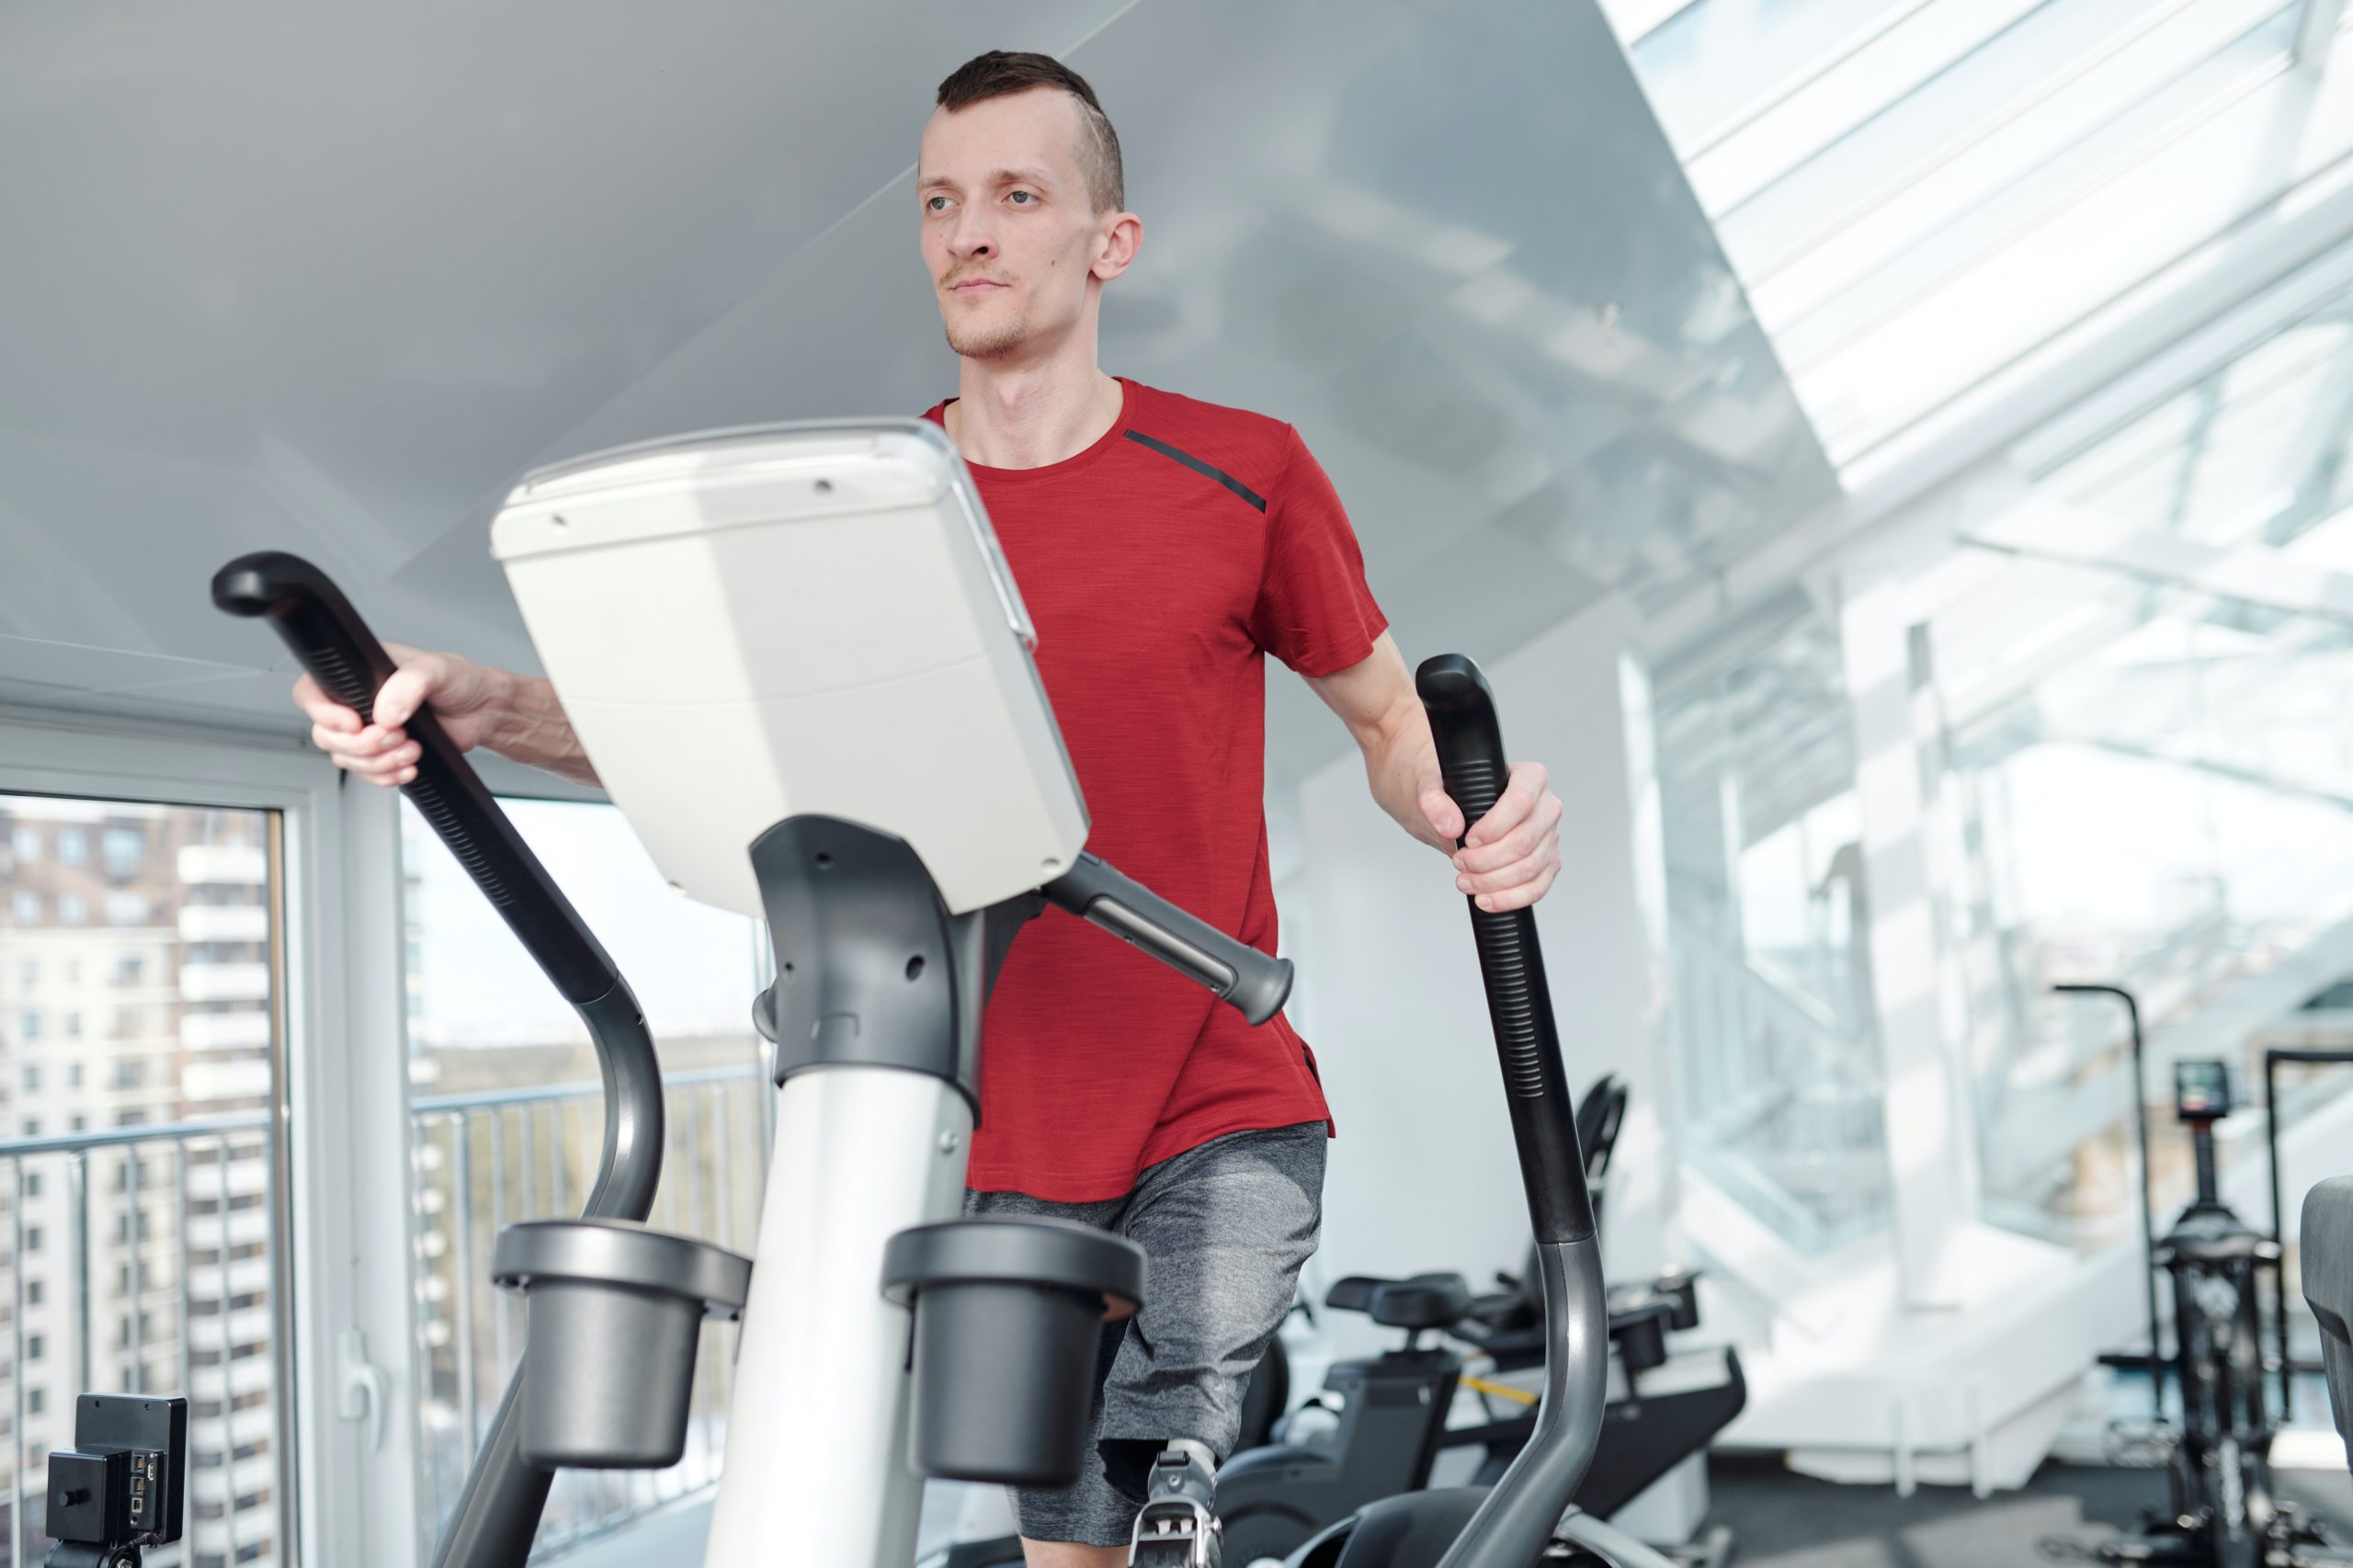 6f8d442a 10 best elliptical trainers for home use in india types image swag swami article